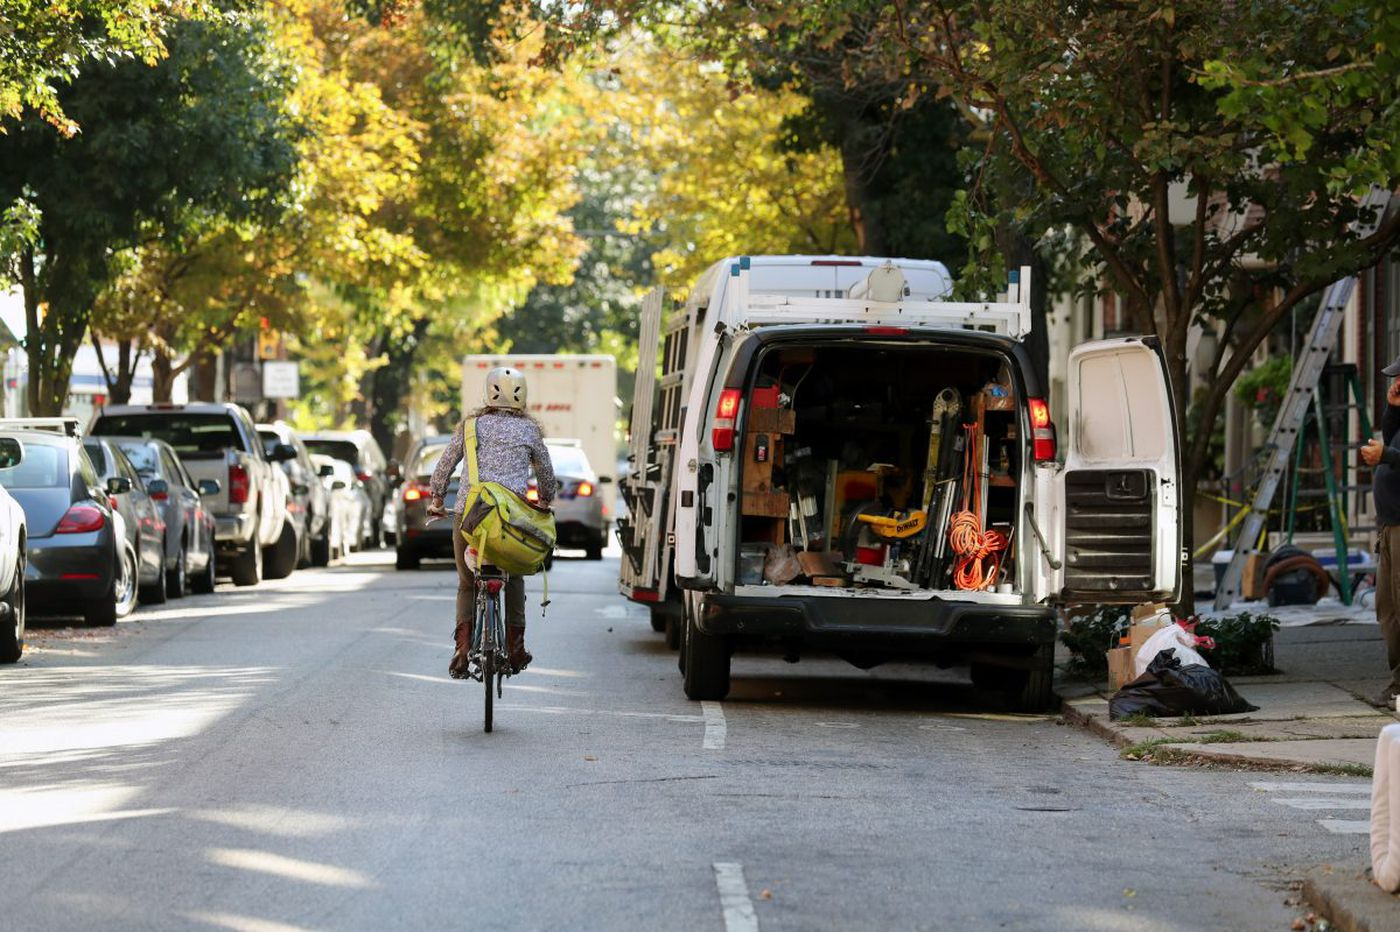 City changing lanes too quickly for bikes on Spruce and Pine | Opinion